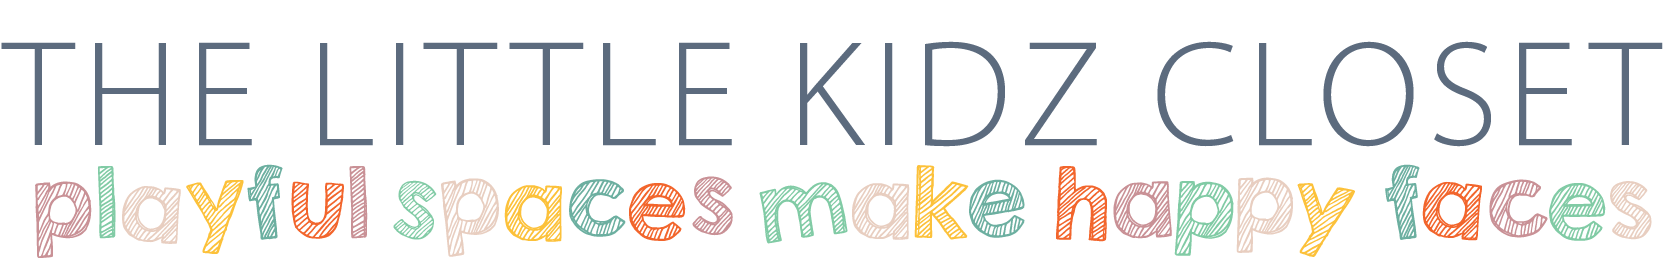 kids decor, nursery decor, creative toy shop and more at The Little Kidz Closet